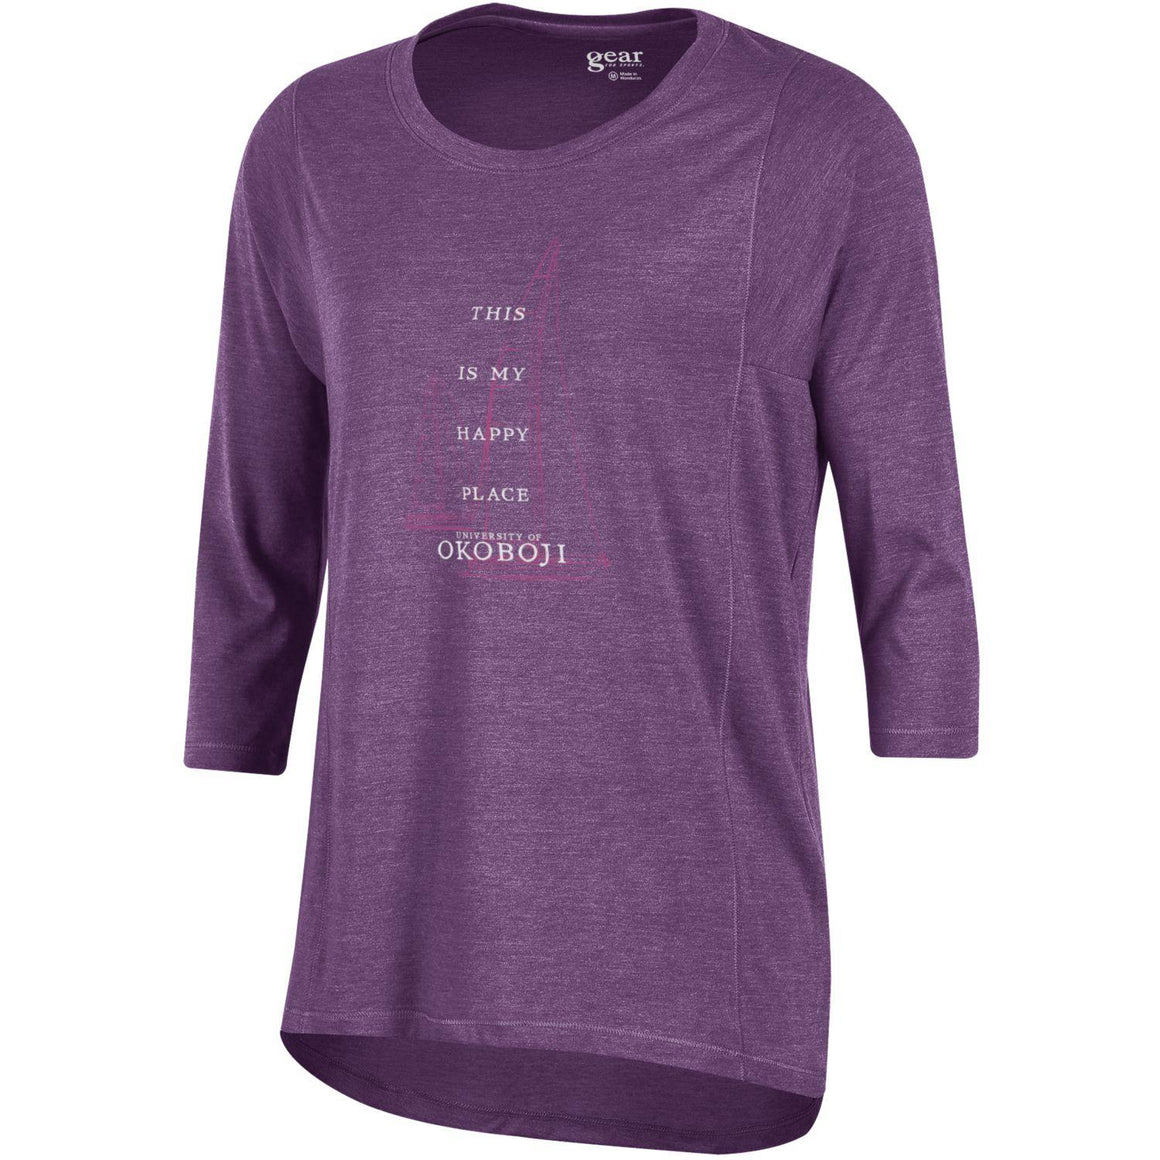 """This is My Happy Place"" Women's Tri-blend 3/4 Sleeve Tee - Violet"